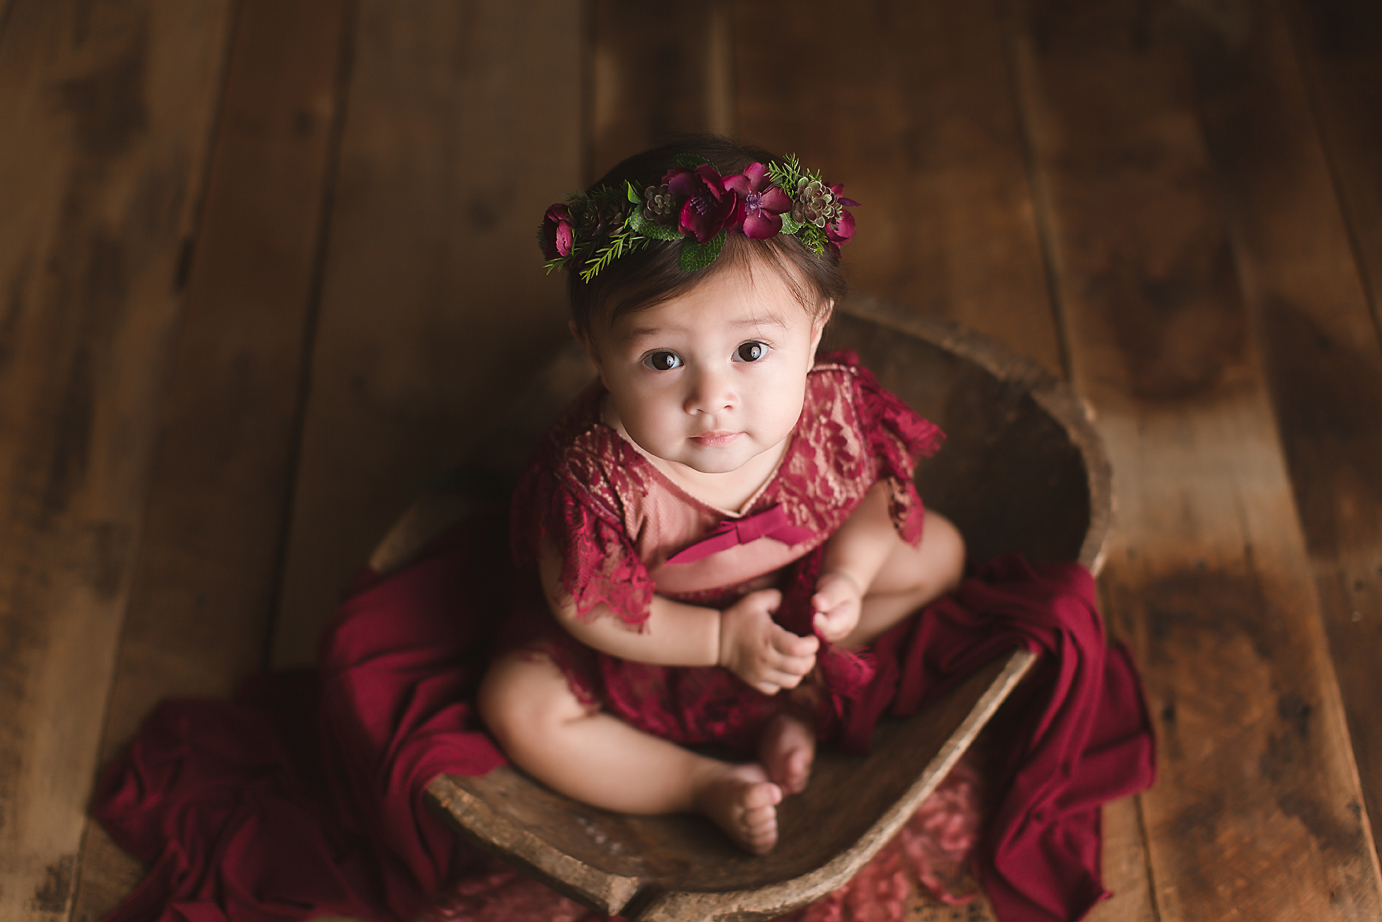 orange-county-baby-photography-holiday-red-lace-vintage-floral-crown.jpg